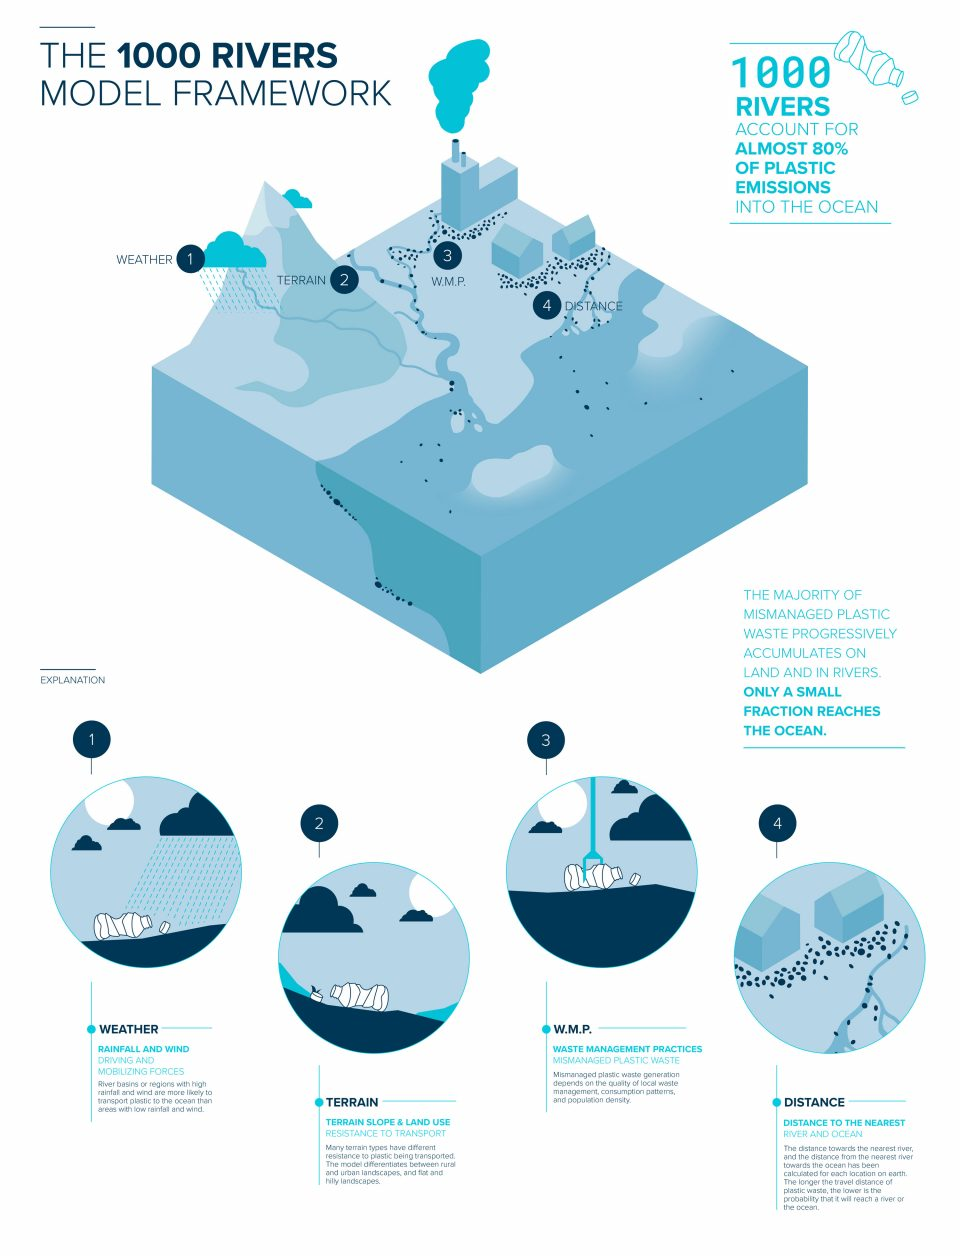 Infographic: The 1000 rivers model framework explained